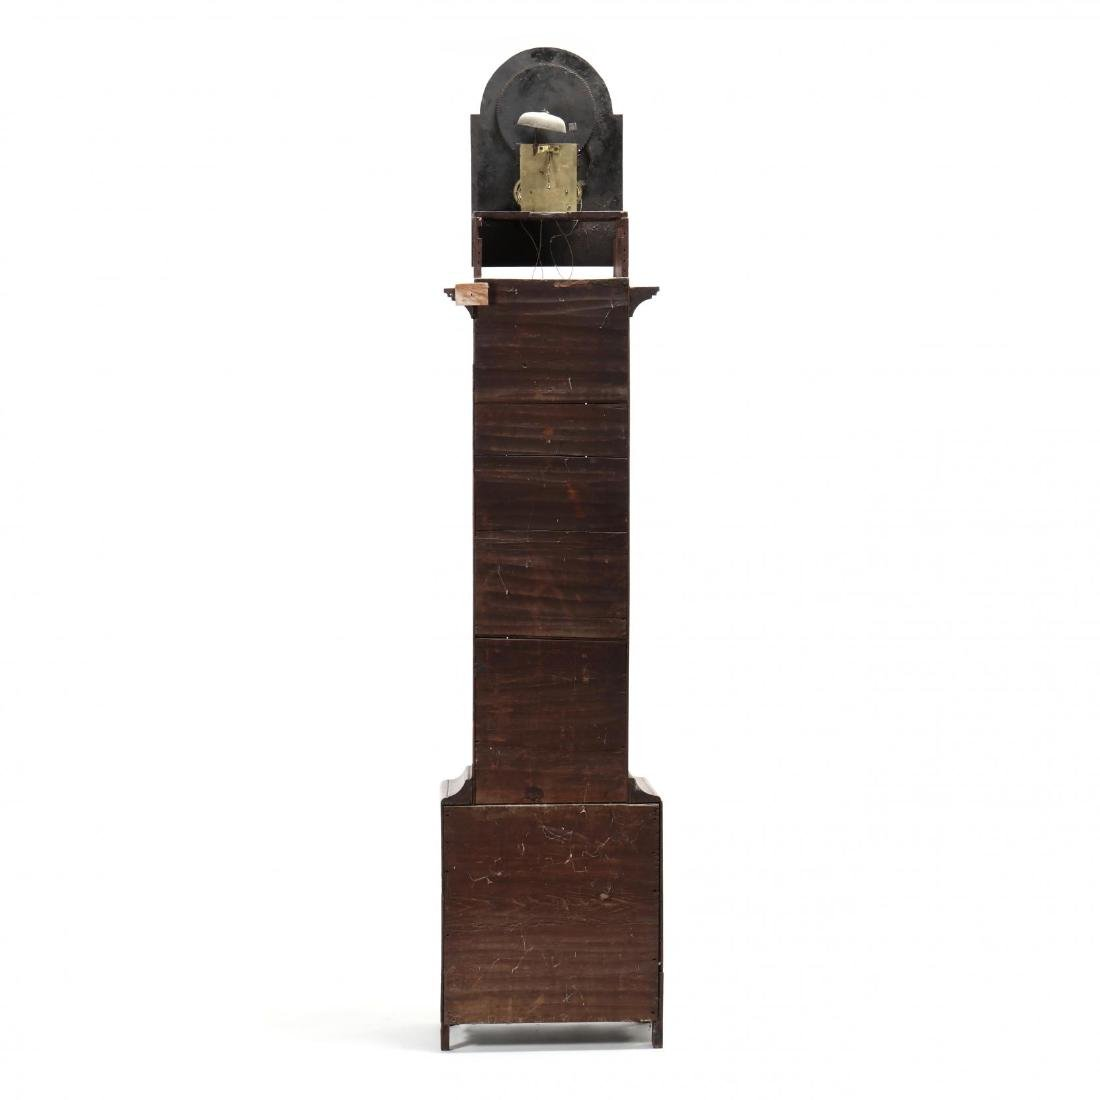 Southern Federal Tall Case Cherry Clock - 10